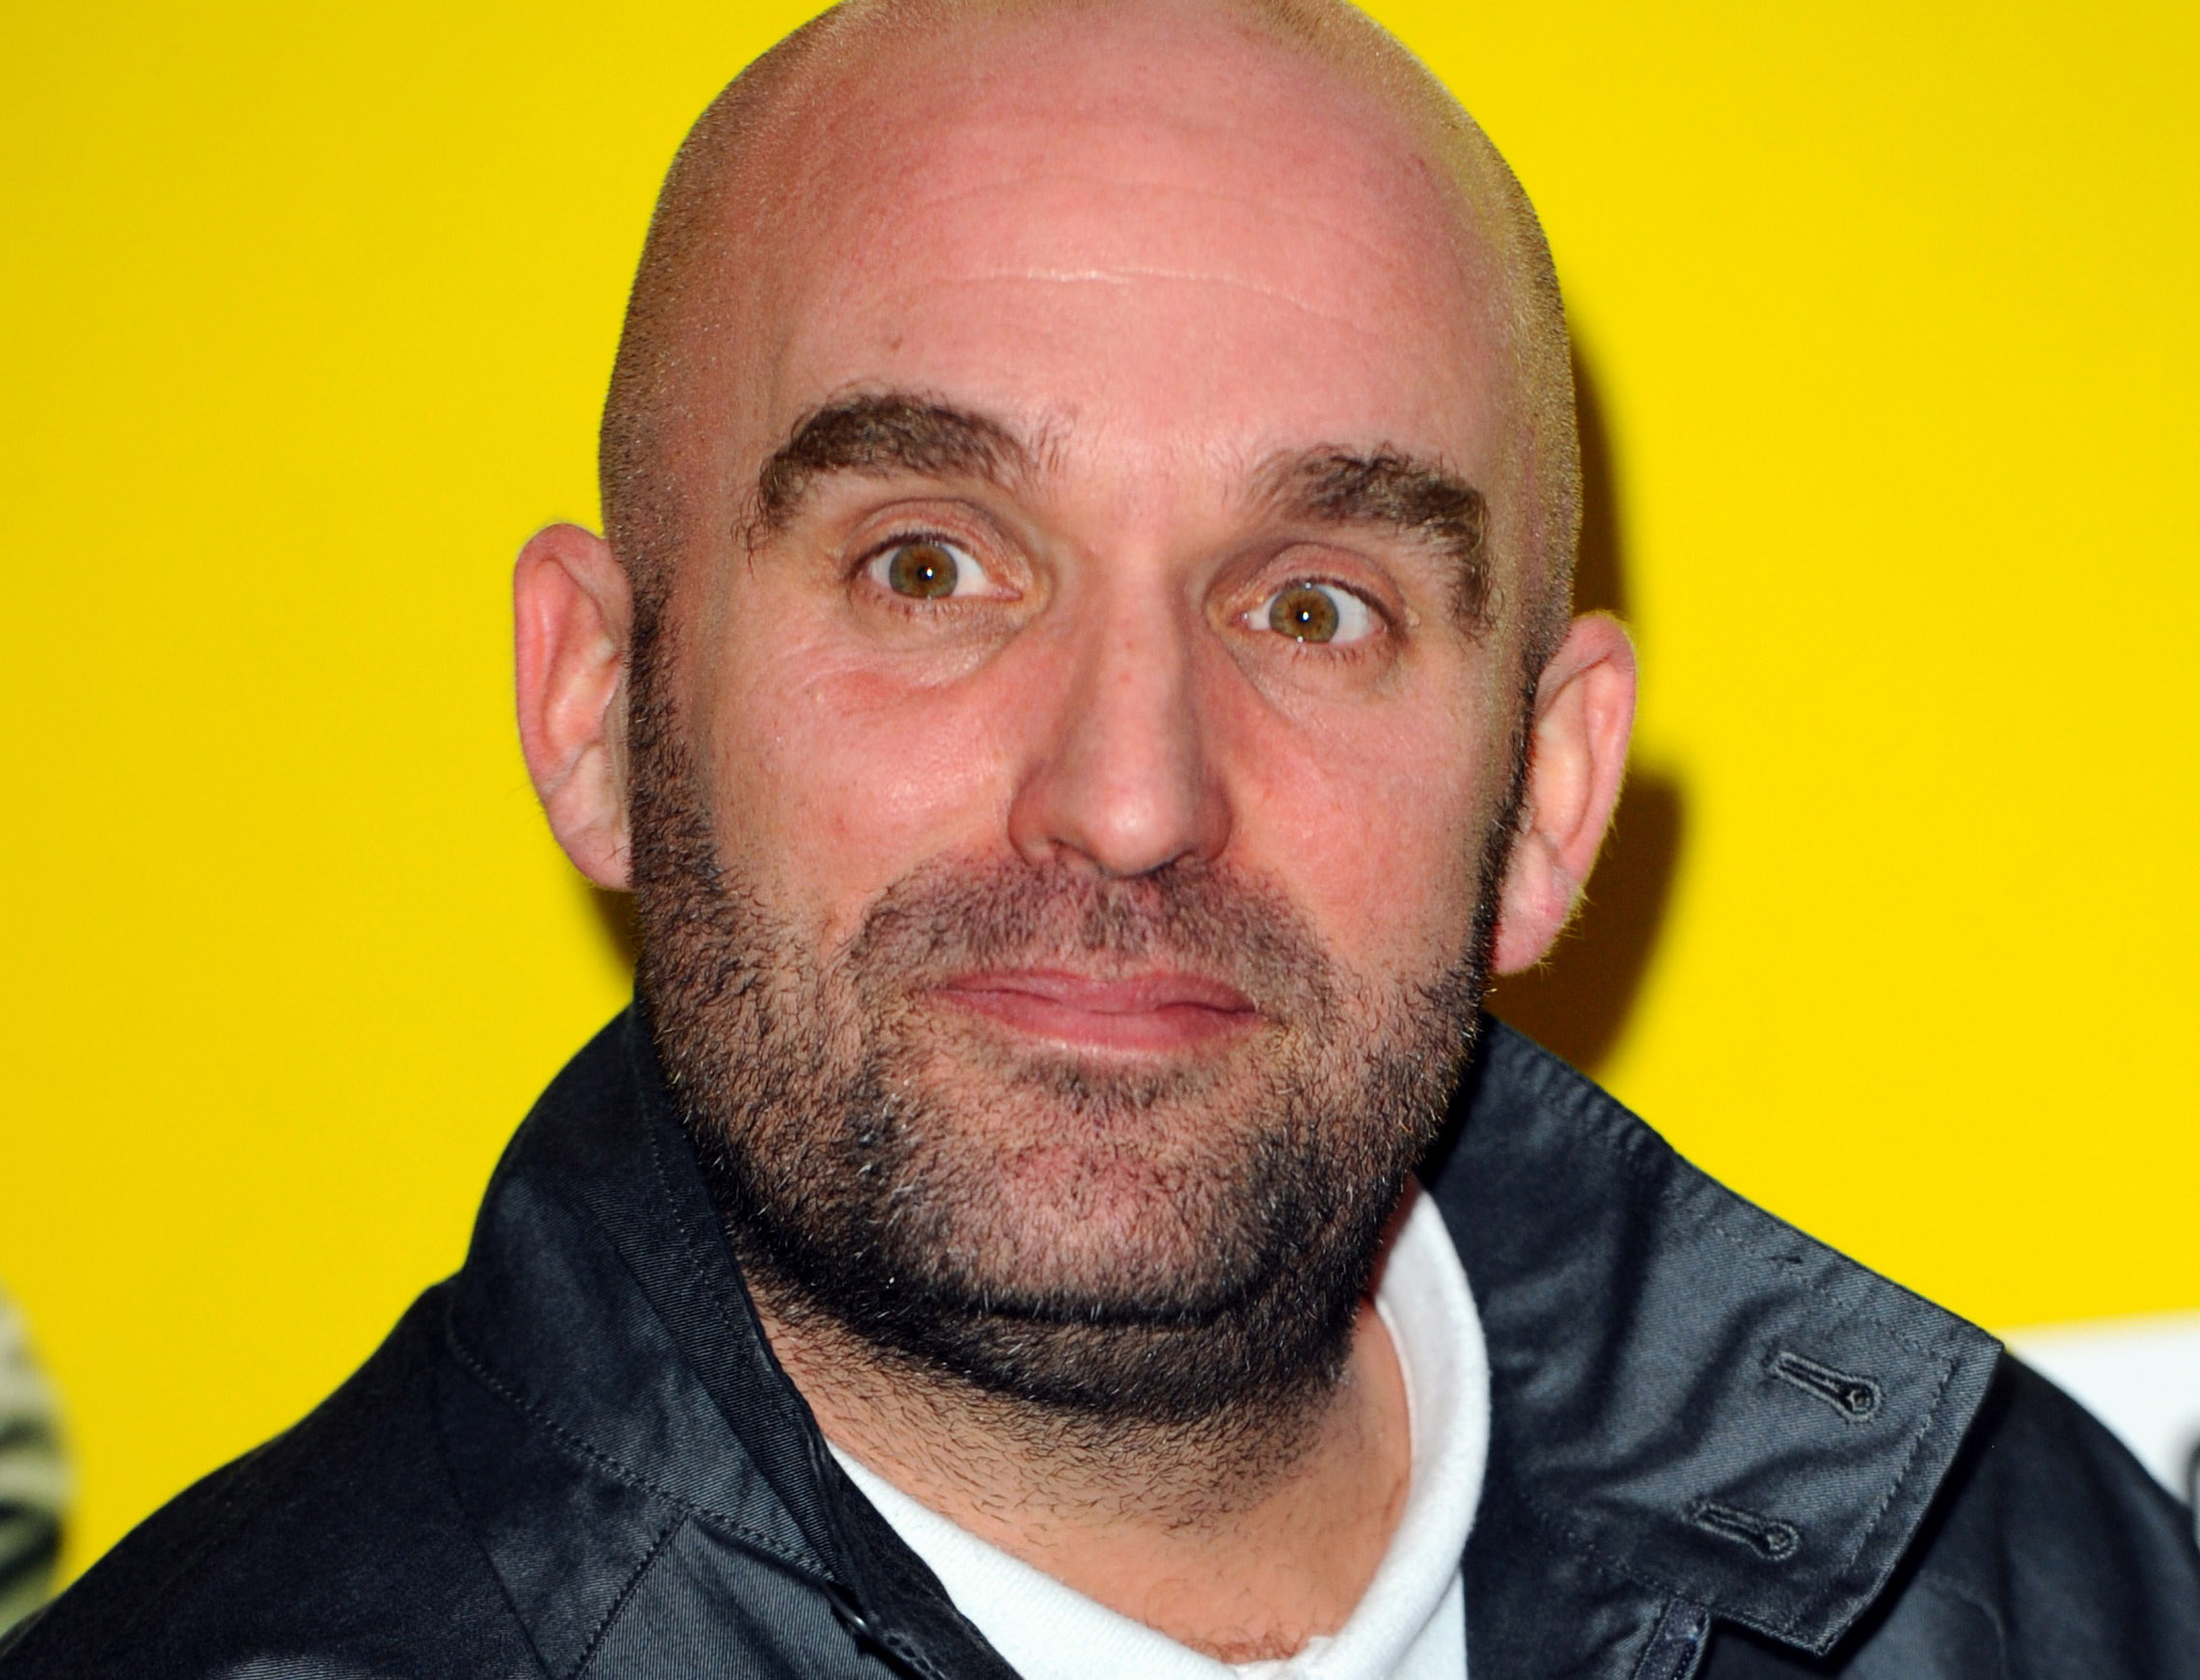 """LONDON, ENGLAND - MARCH 11: Shane Meadows attends a special screening of """"Svengali"""" at Rich Mix Cinema on March 11, 2014 in London, England. (Photo by Anthony Harvey/Getty Images)"""